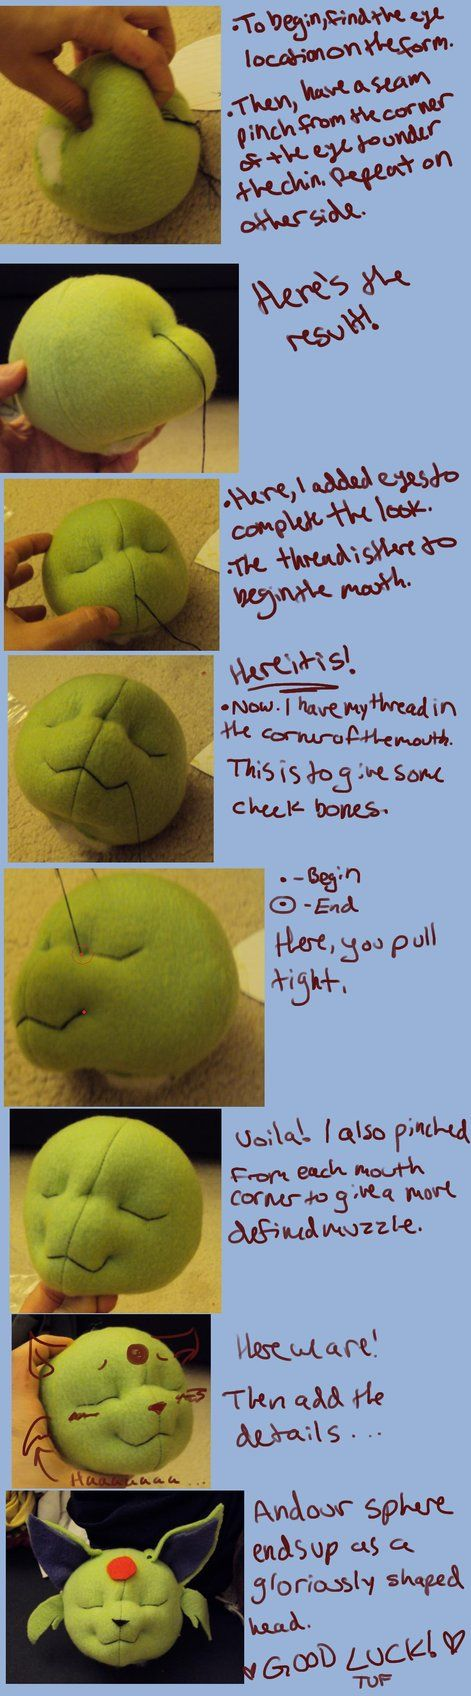 Needle Sculpting Tutorial by ~ThisUsernameFails on deviantART